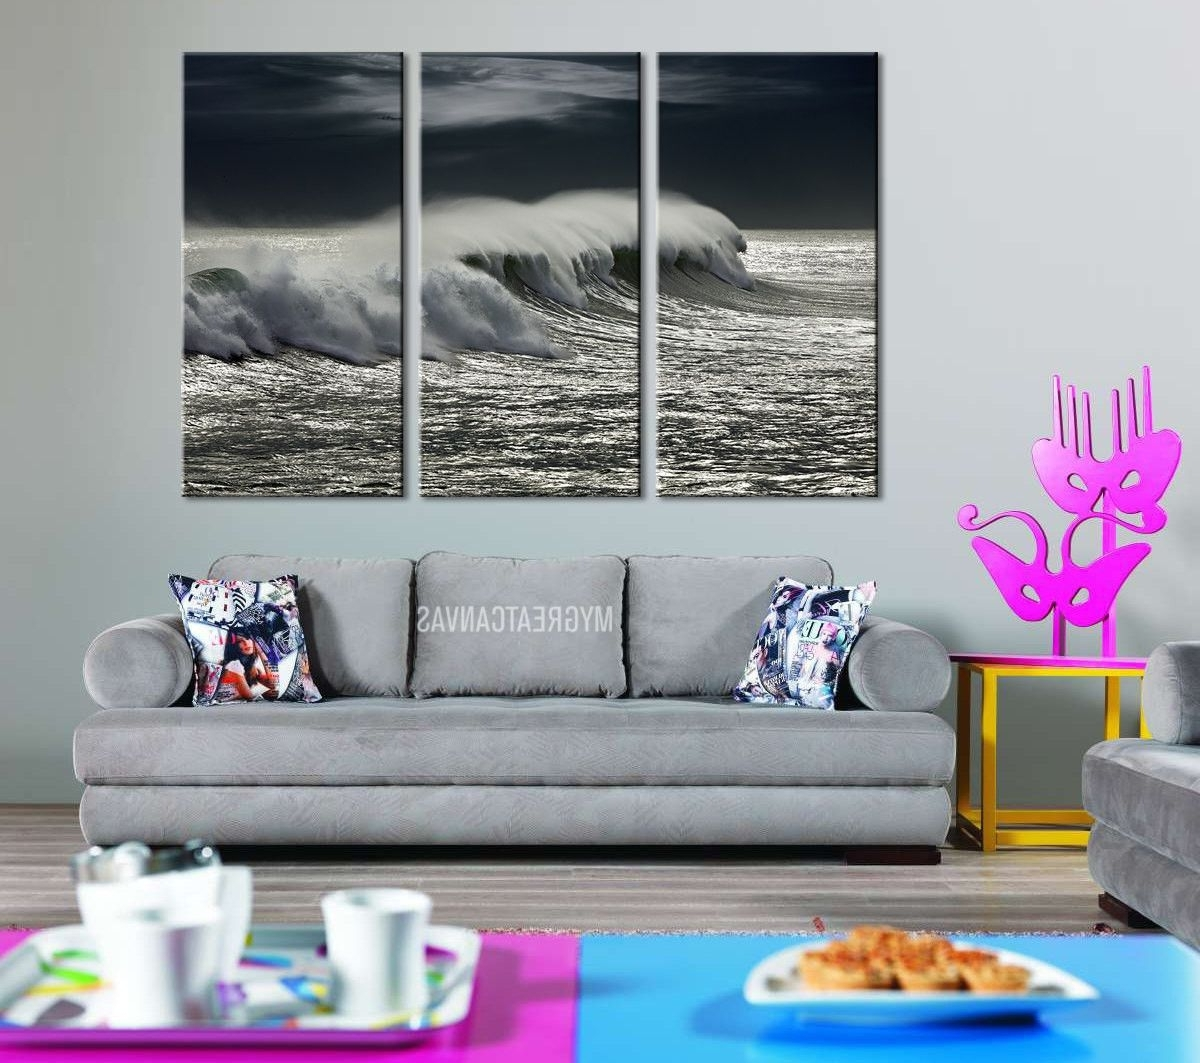 Large Wall Art Giclee 3 Panel Canvas Print – Black And White Ocean Within Well Liked Ocean Canvas Wall Art (Gallery 15 of 15)